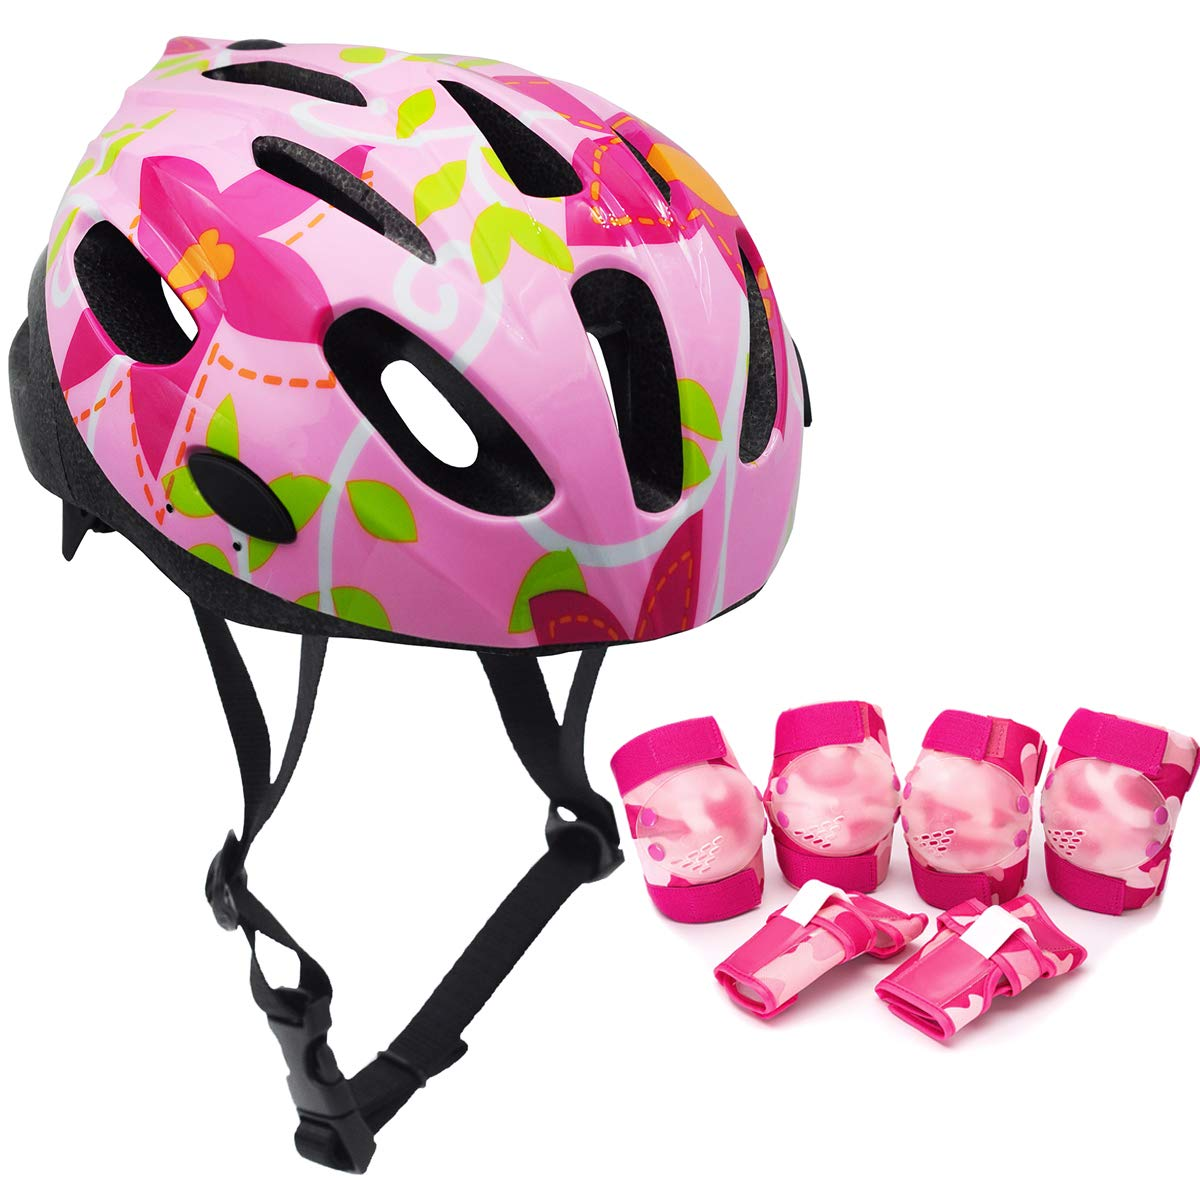 BeBeFun Safety Adjustable Size Kids Babies Bike Multi-Sports Helmet for Boy 3-7 Years Old Lighting Theme (Pink and 6pcs Pads)